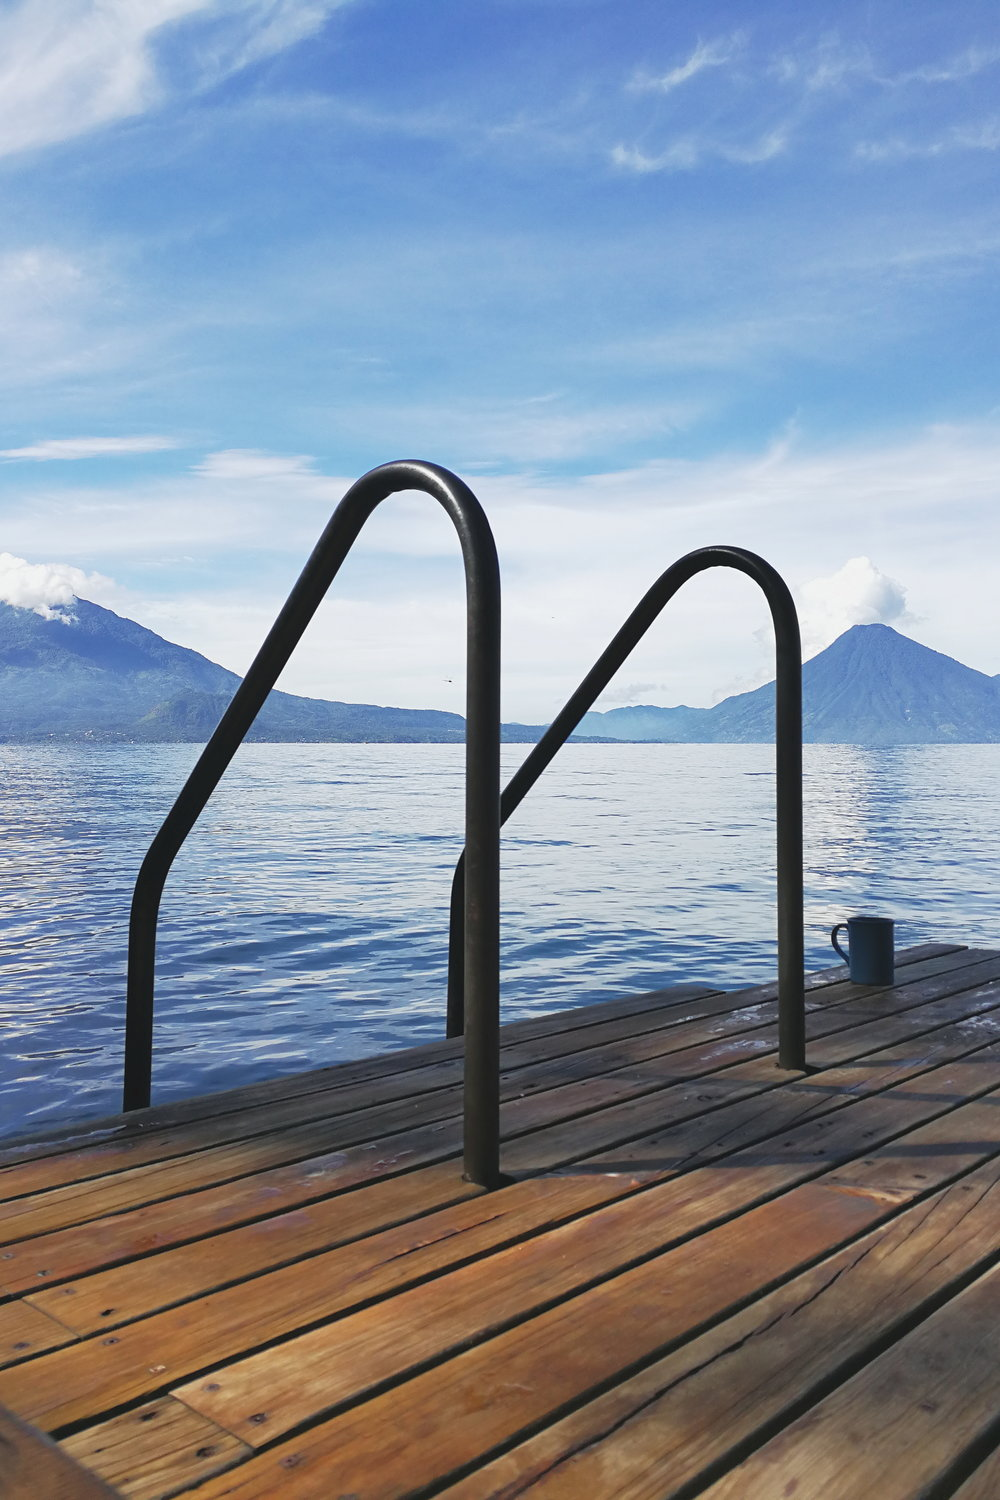 WEEKEND: - VILLAS BALAM'YA, ATITLÁN